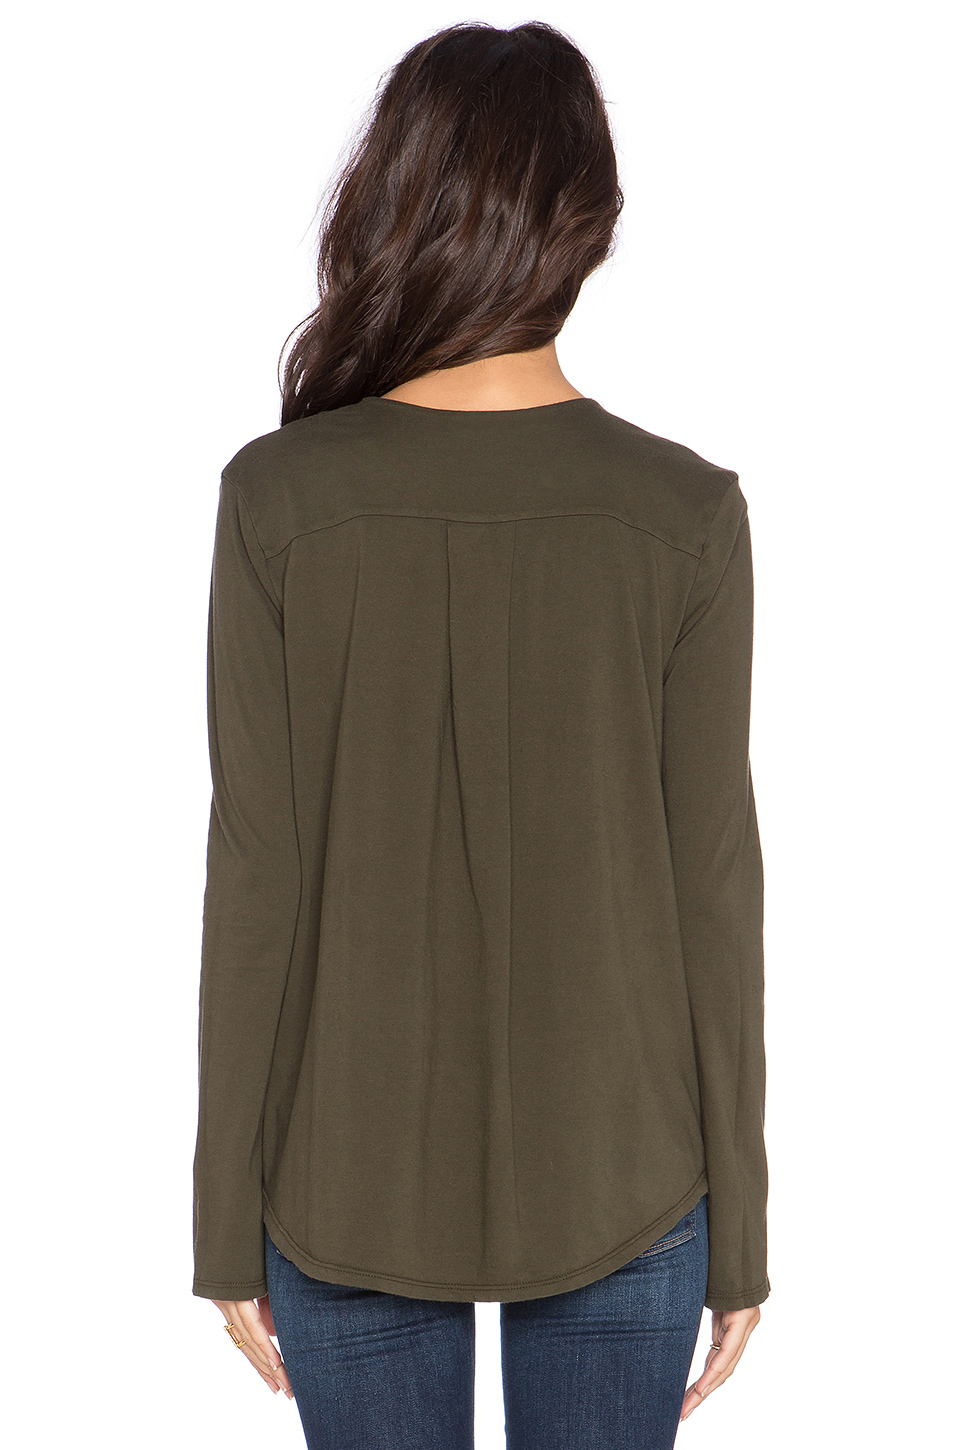 James perse open henley top in green lyst for James perse henley shirt